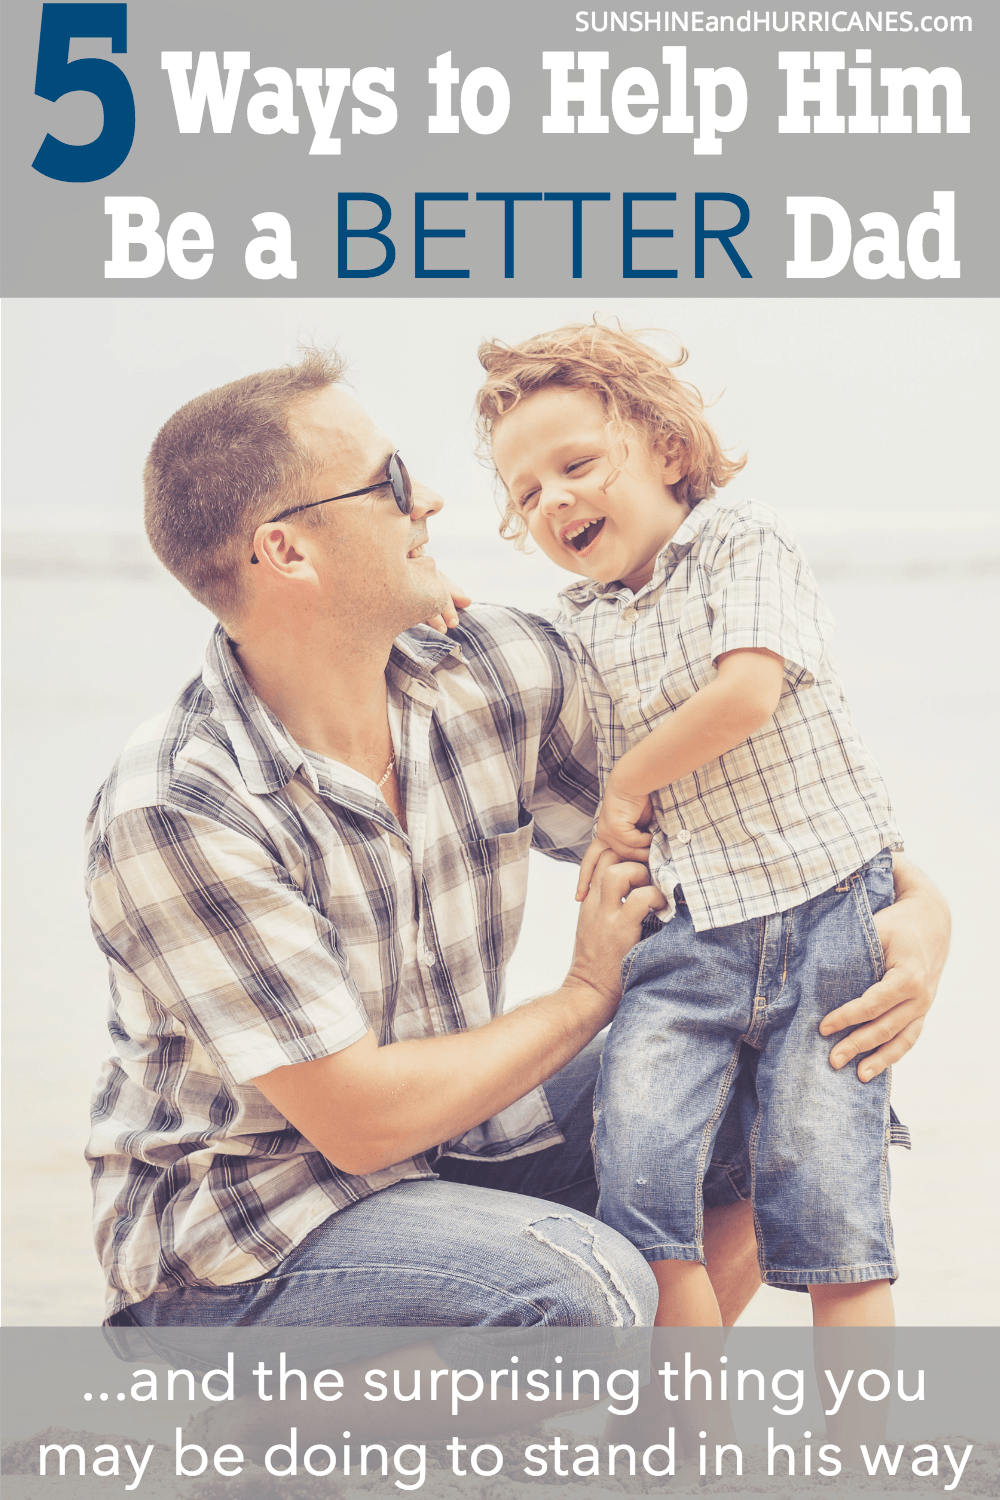 Do you wish their father would take a more active role in your kid's lives? Here are 5 Ways to Help Him Be a Better Dad and One Surprising Thing That May Be Standing in His Way...